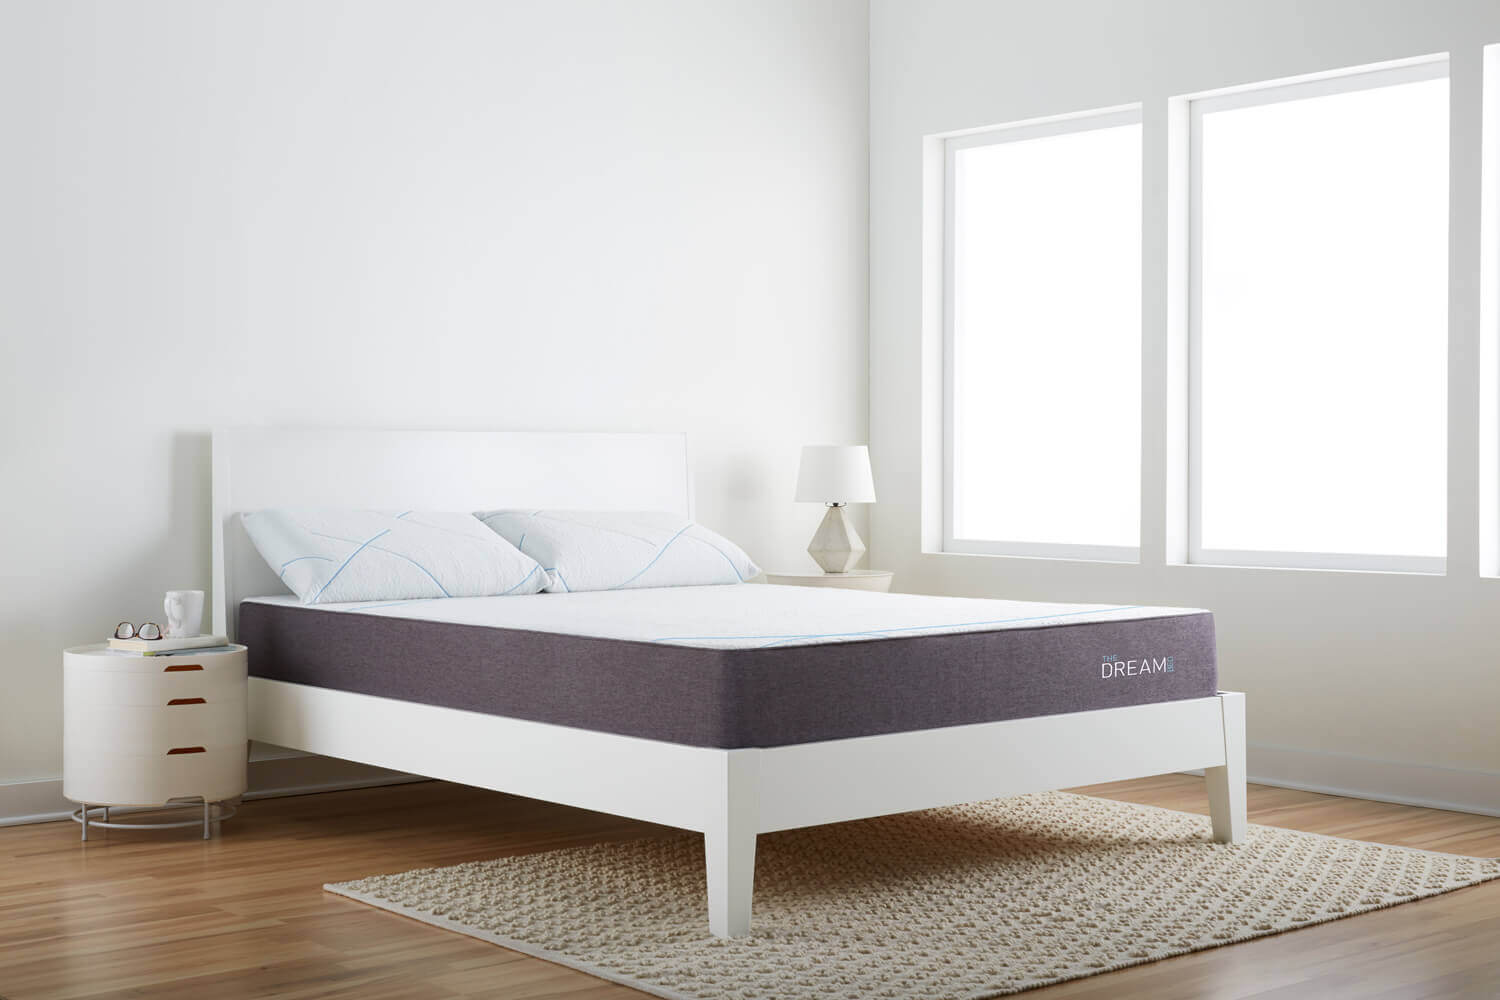 Traumhafte Betten Dream Bed Mattress Review From The Sleep Sherpa!